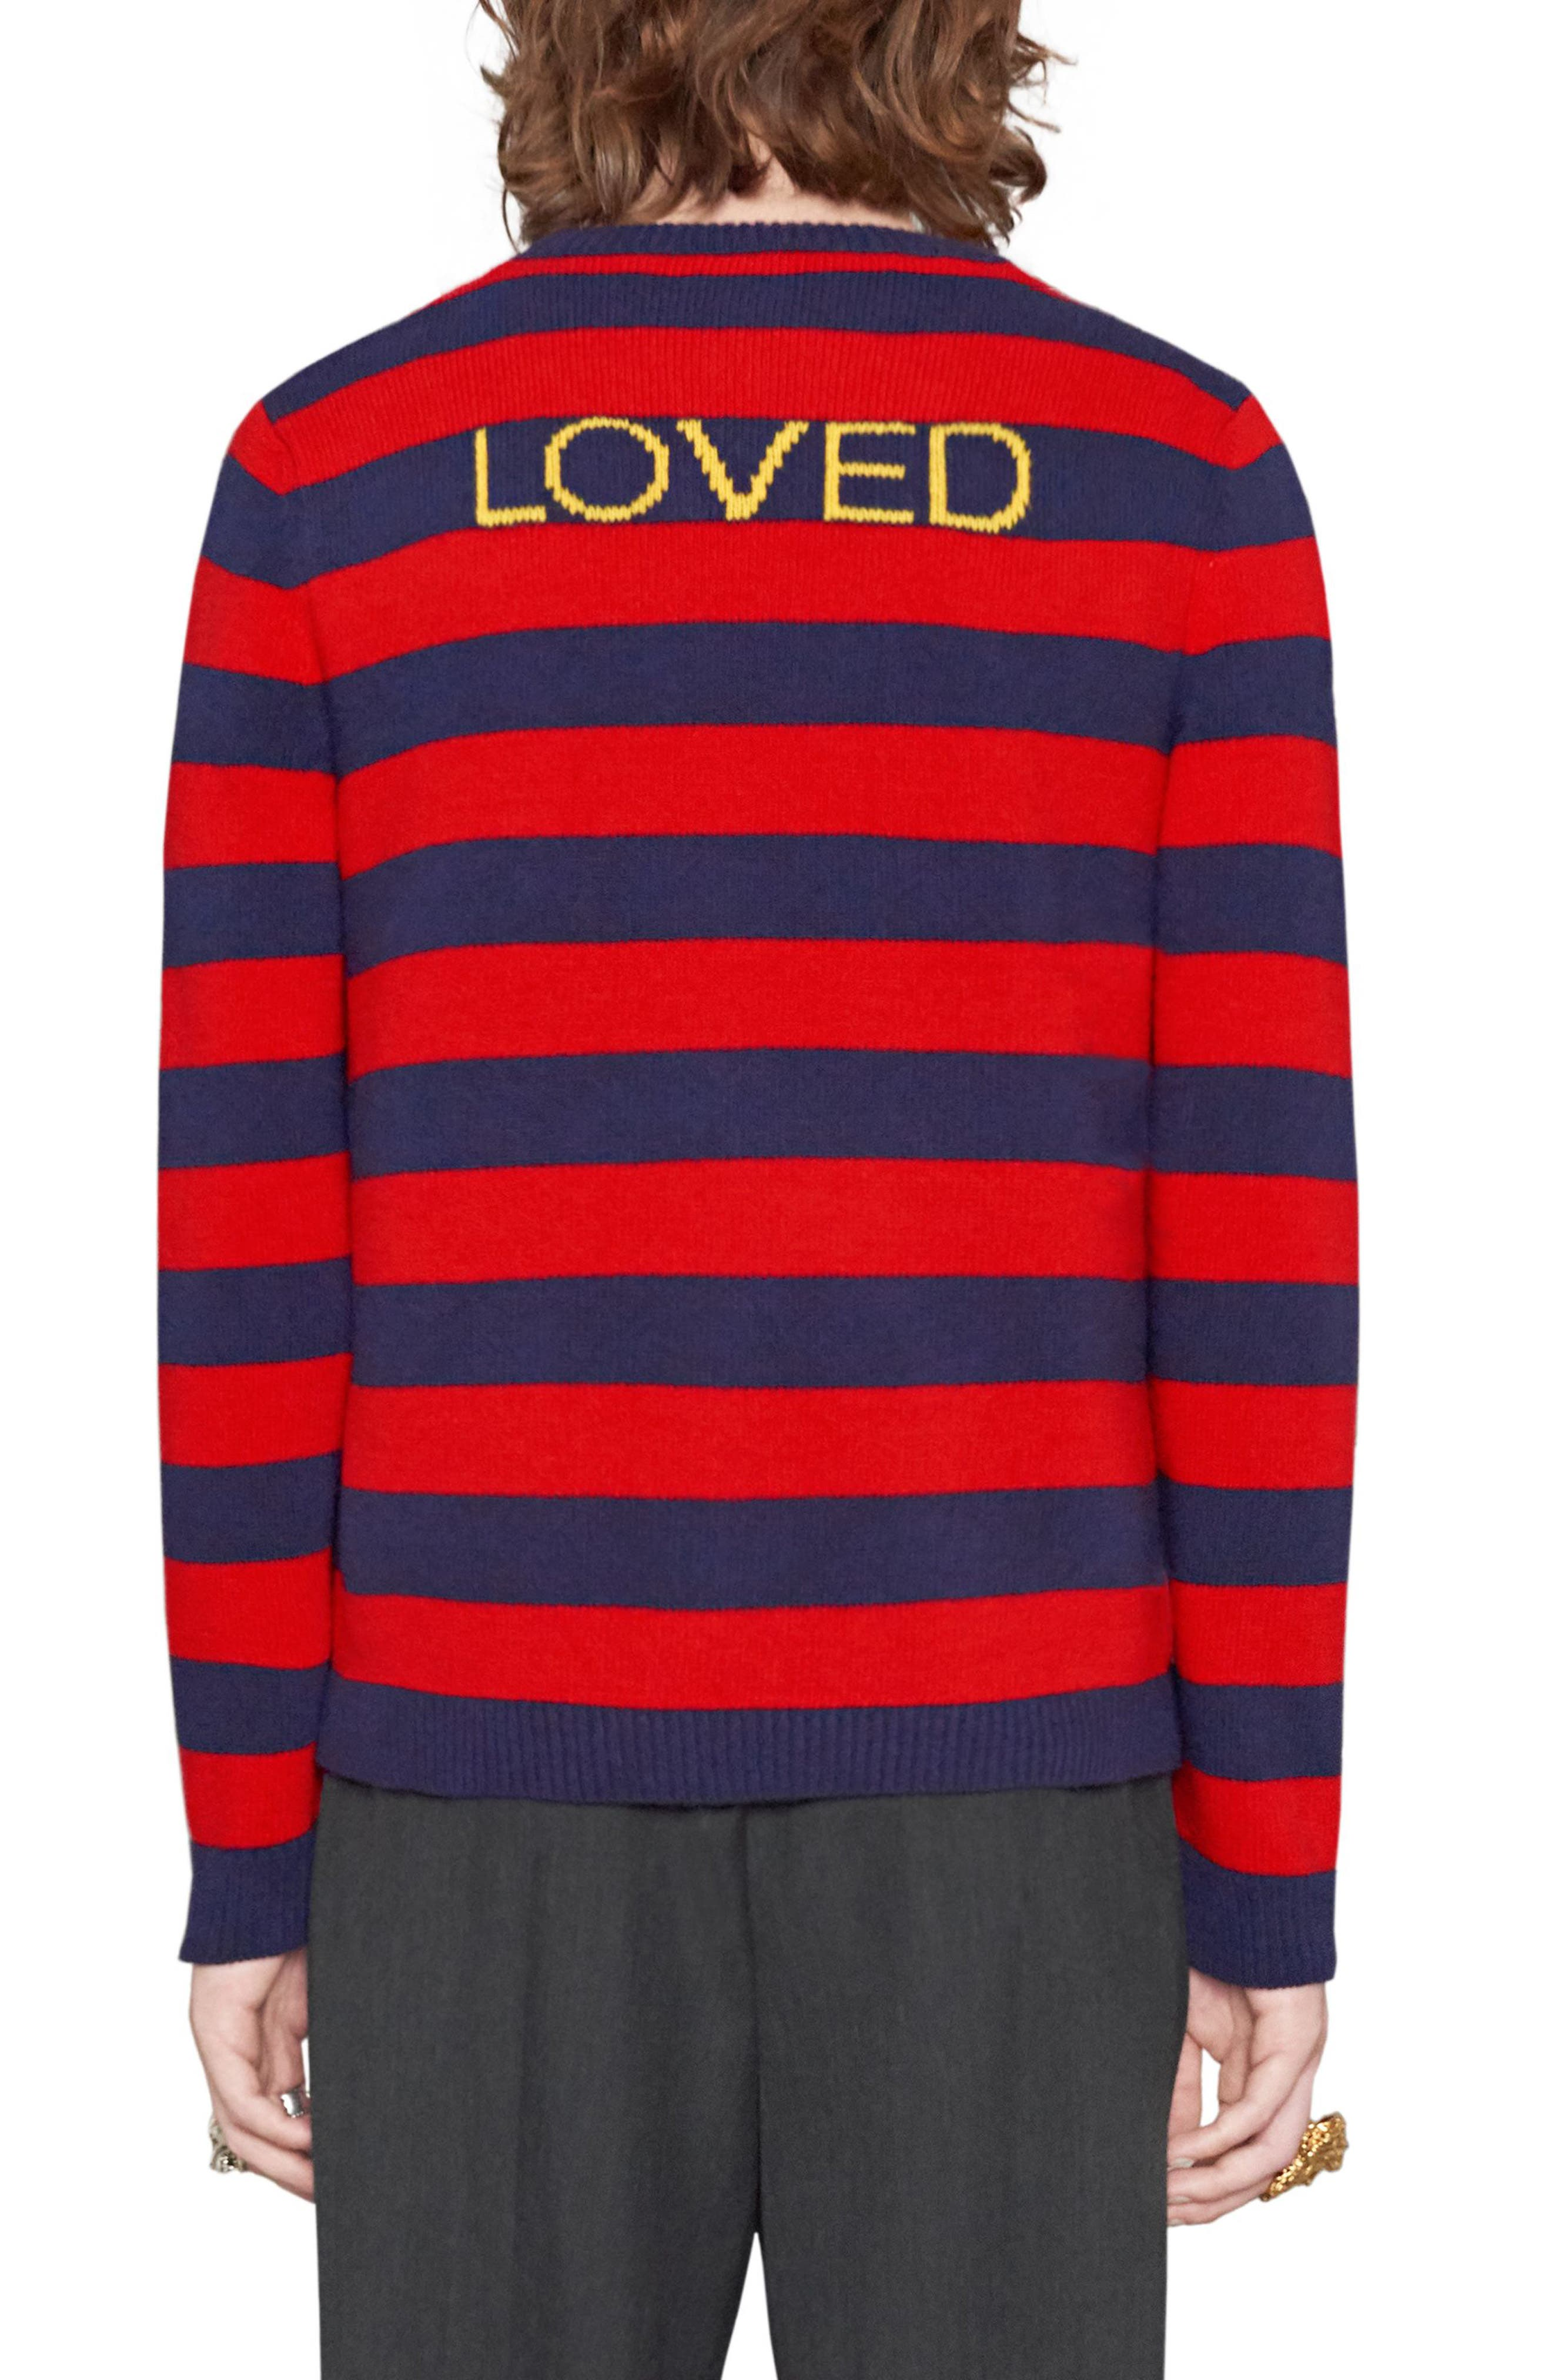 Stripe Bee Wool Crewneck Sweater,                             Alternate thumbnail 2, color,                             Red